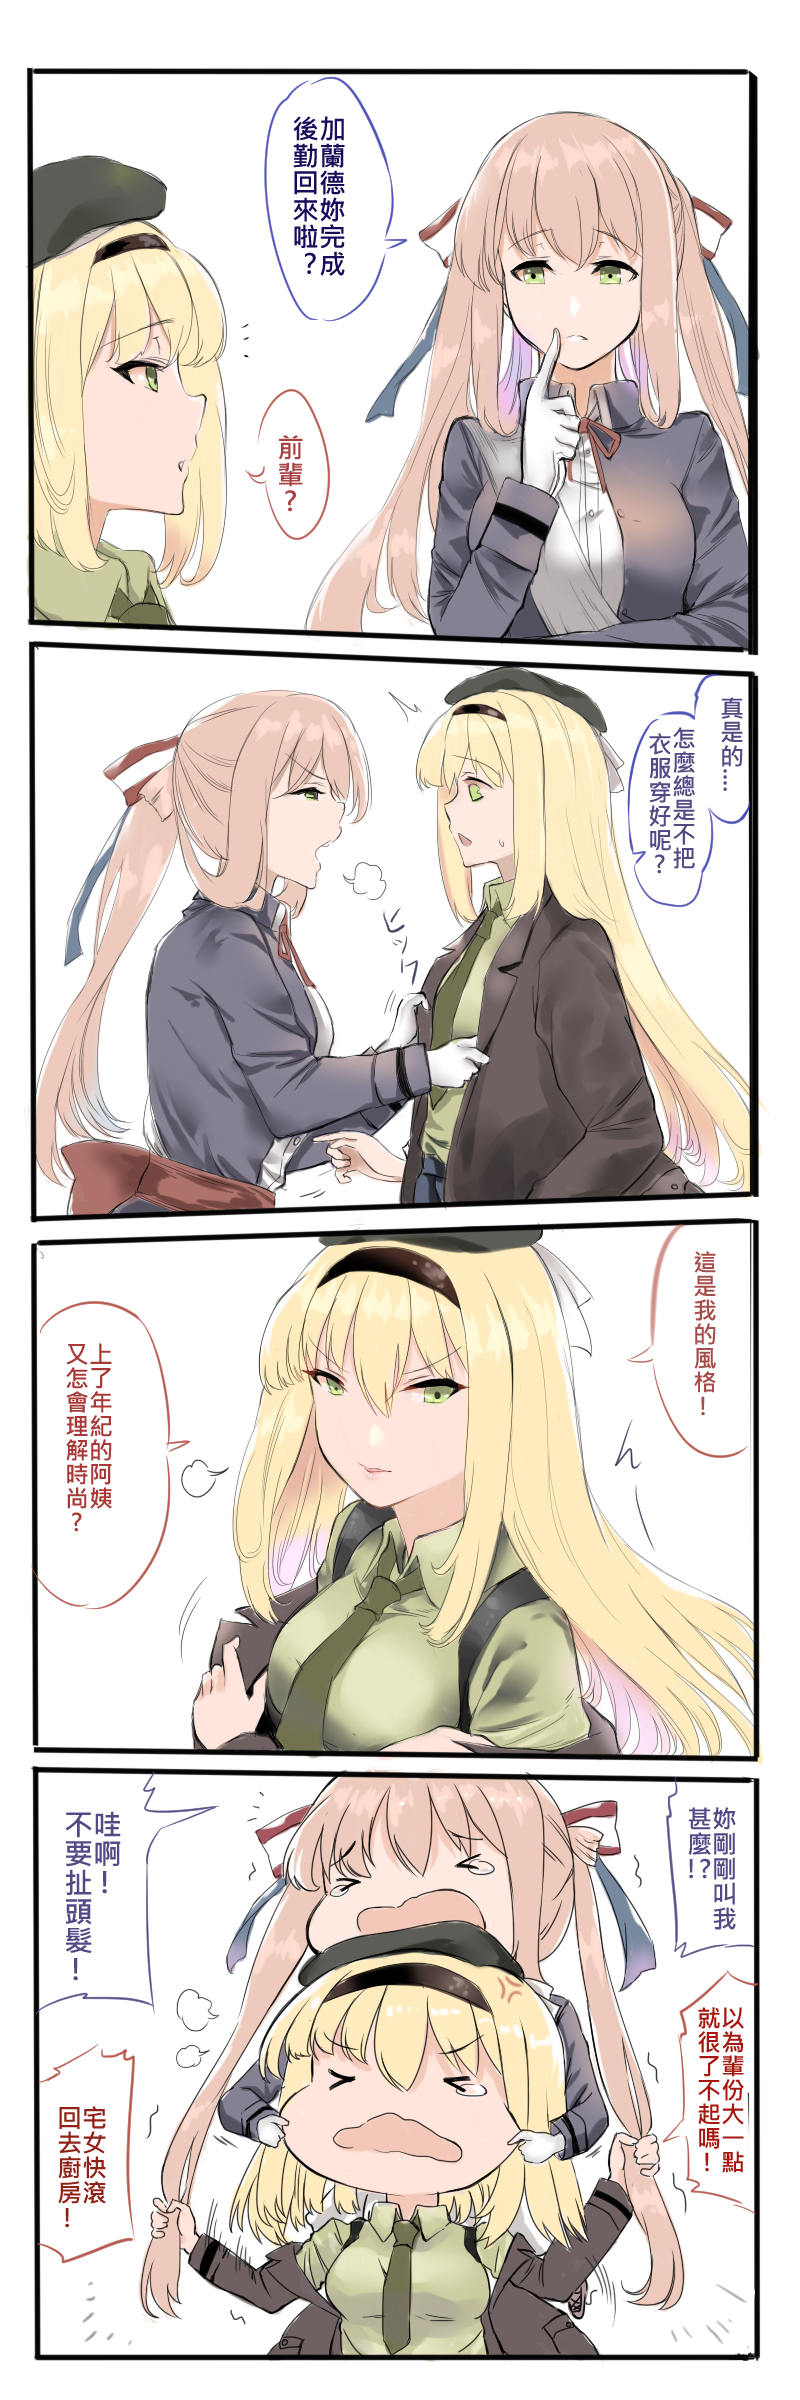 frontline an-94 girls Zonic the zone cop comic